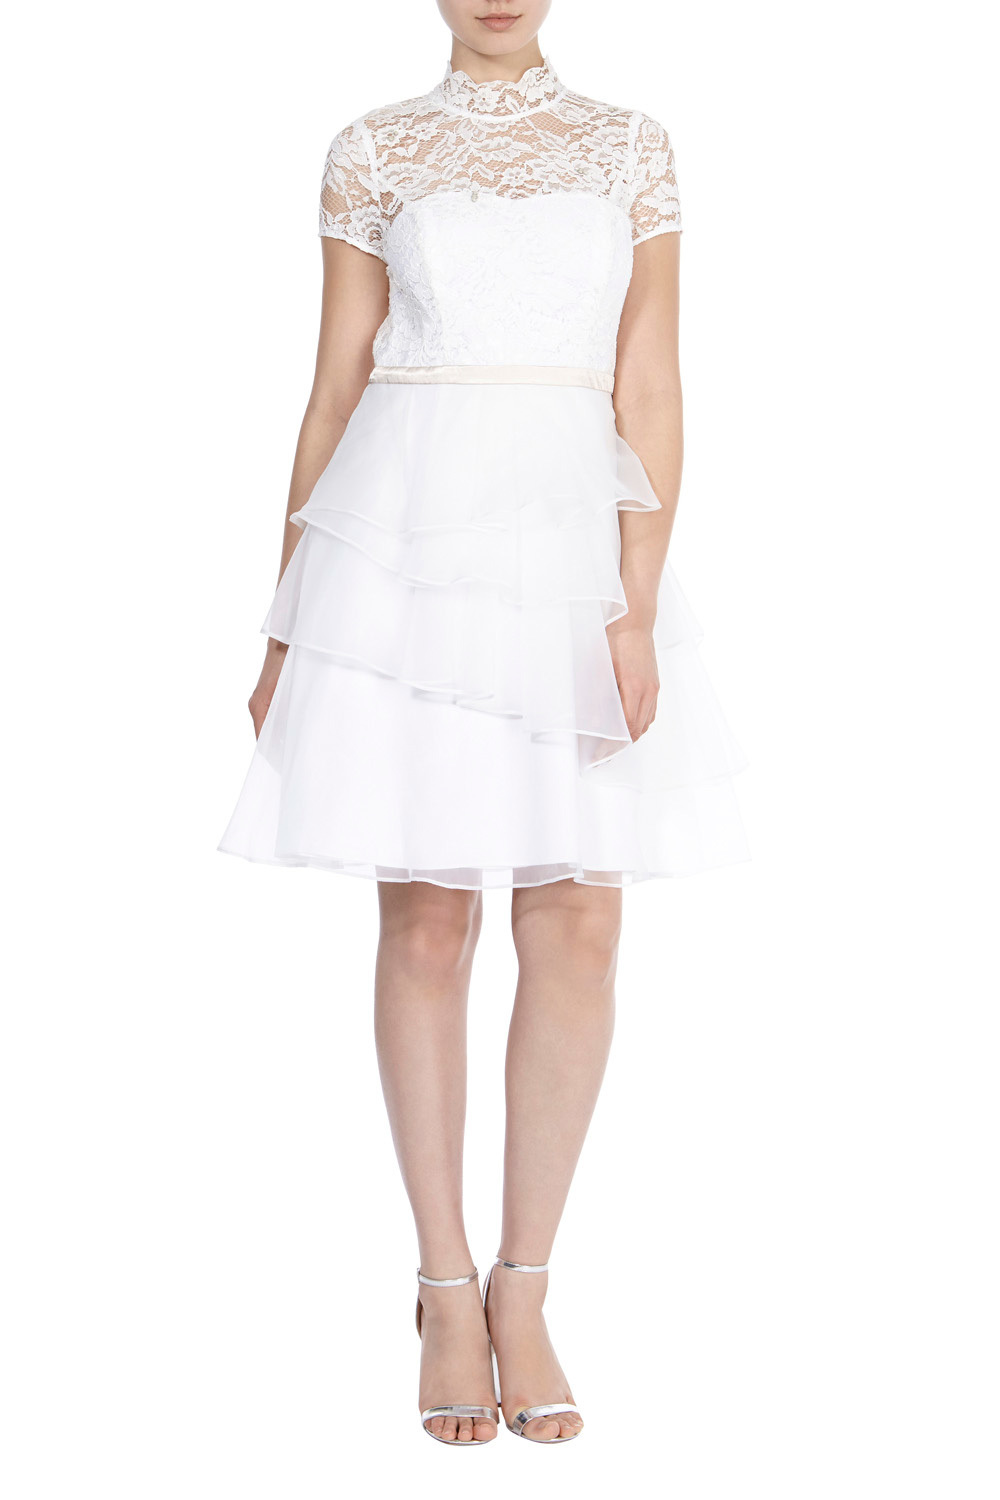 Selby Lace Short Dress - pattern: plain; style: prom dress; neckline: high neck; bust detail: sheer at bust; predominant colour: white; occasions: evening; length: just above the knee; fit: fitted at waist & bust; fibres: polyester/polyamide - 100%; hip detail: adds bulk at the hips; sleeve length: short sleeve; sleeve style: standard; texture group: lace; pattern type: fabric; embellishment: lace; season: s/s 2016; wardrobe: event